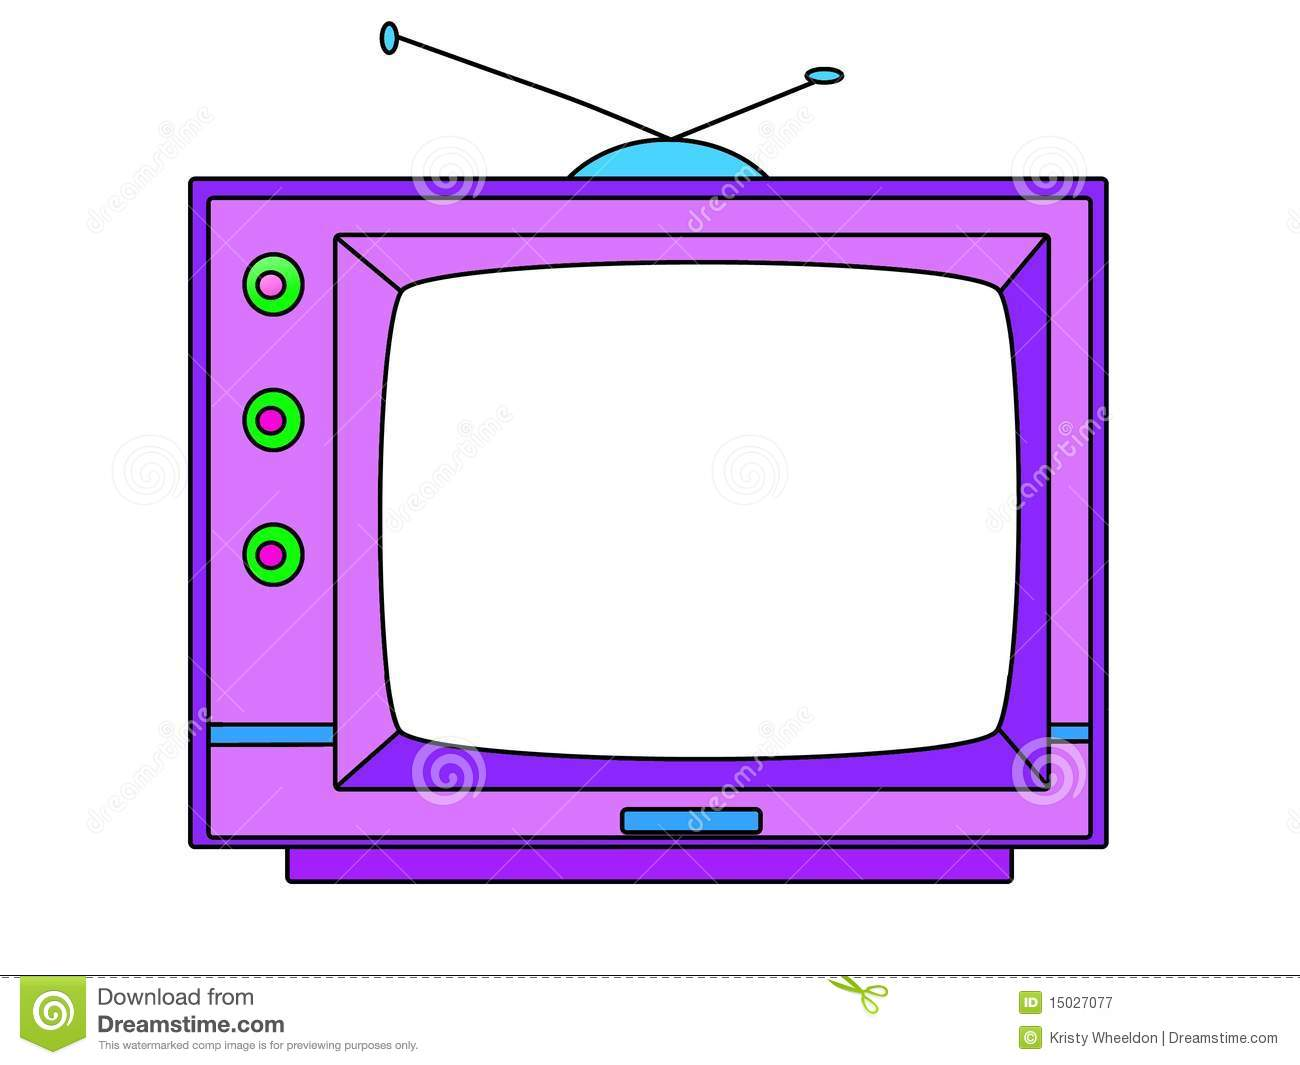 Cartoon Television Set - Illustration Royalty Free Stock Photography ...